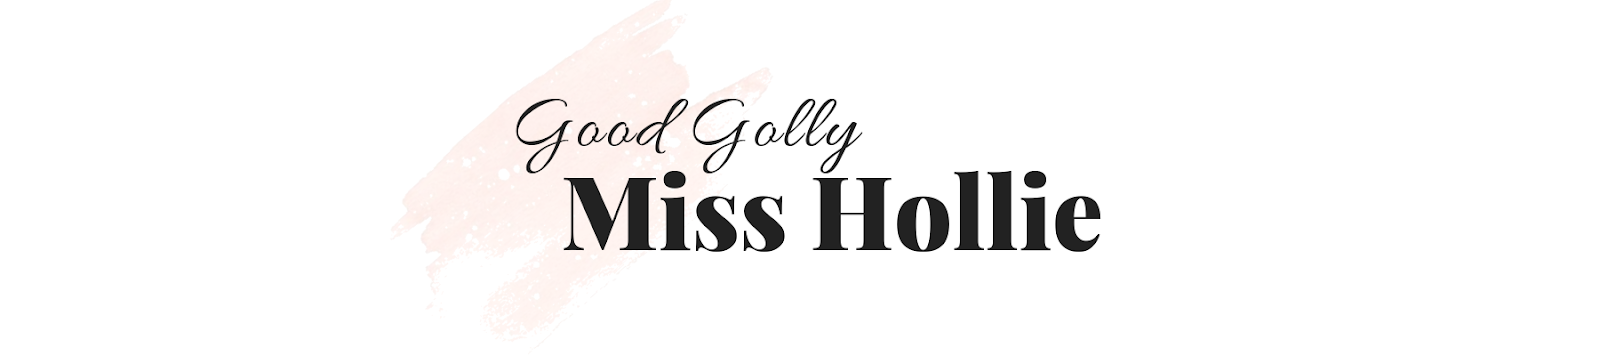 Good Golly Miss Hollie | Lifestyle, Reviews & Marketing Advice